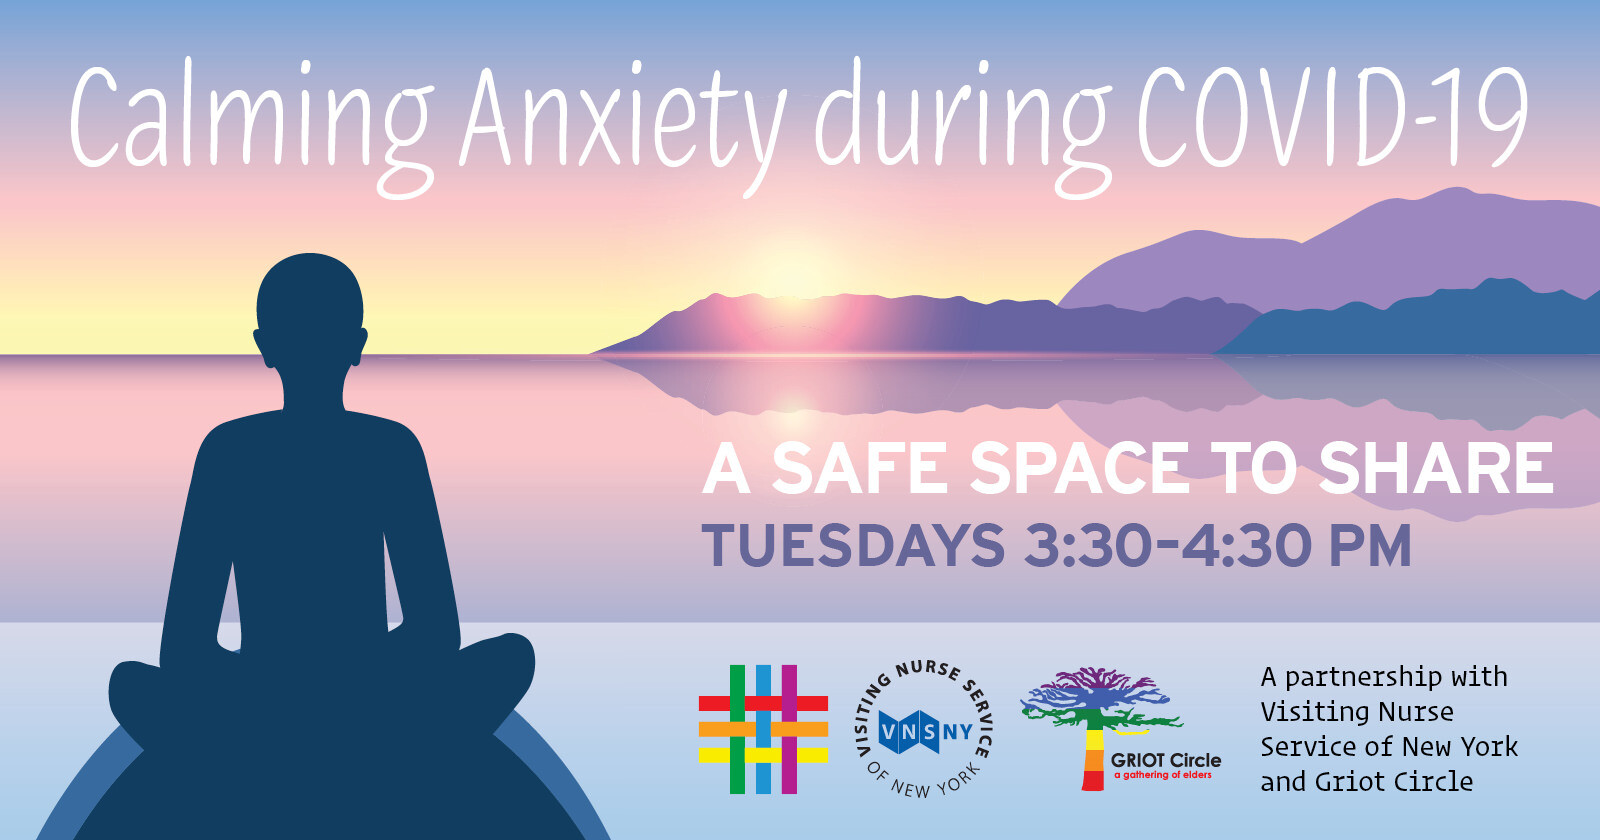 Calming Anxiety during COVID-19 at Brooklyn Community Pride Center